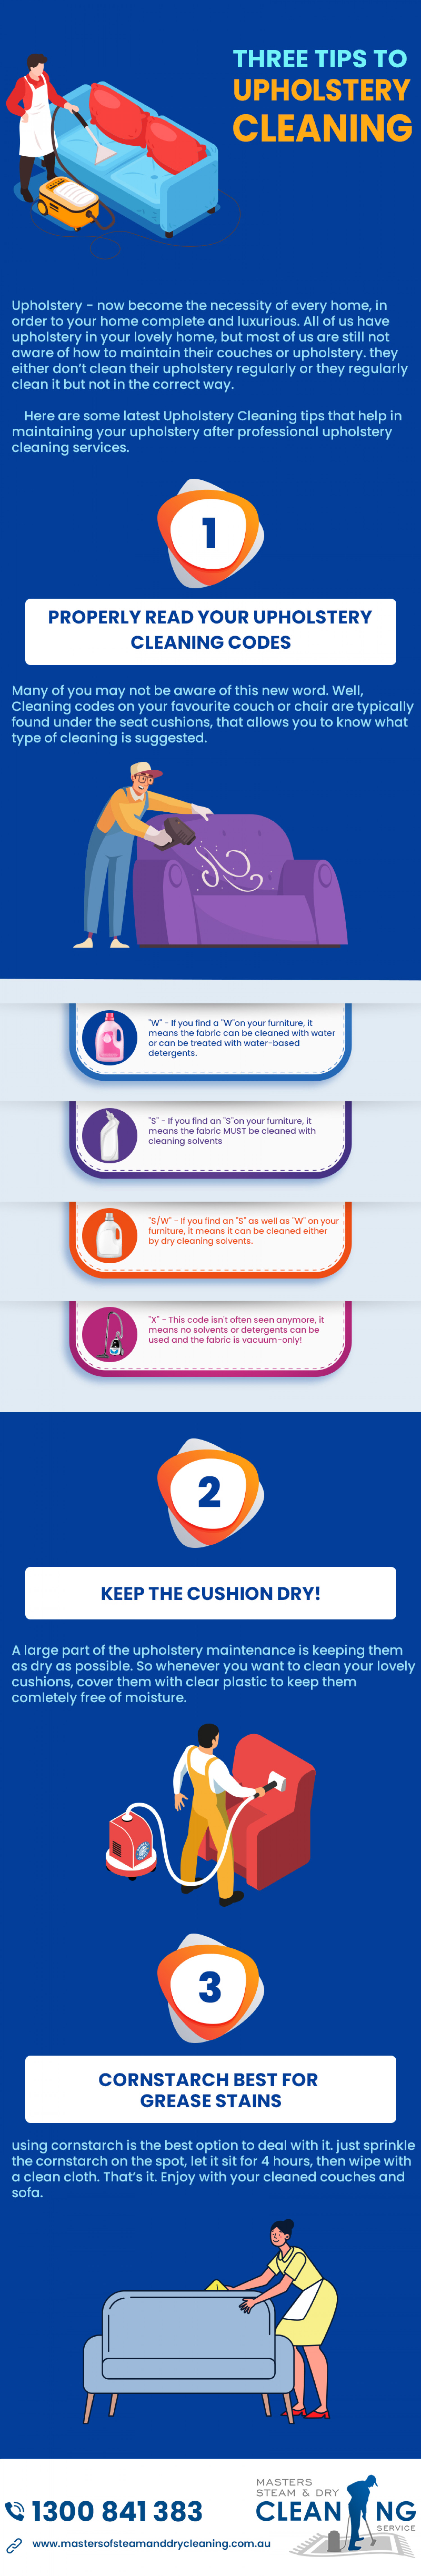 Three Valuable Tips To Upholstery Cleaning Infographic